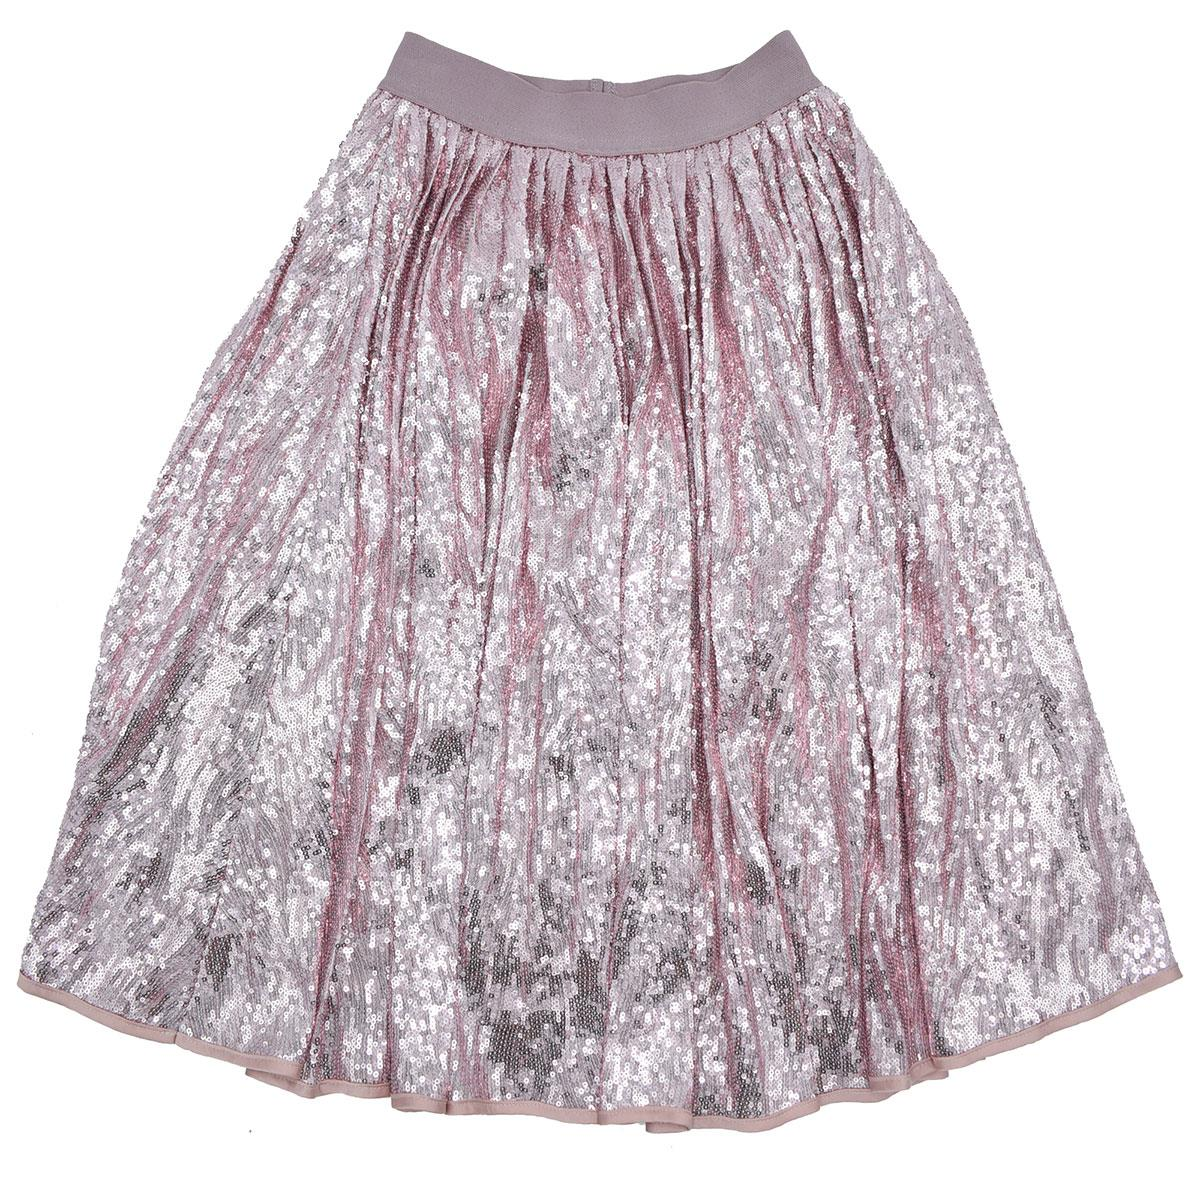 enorme sconto 5e0ed 2bf83 John Richmond Bambina Gonna Lunga Paillettes Rosa